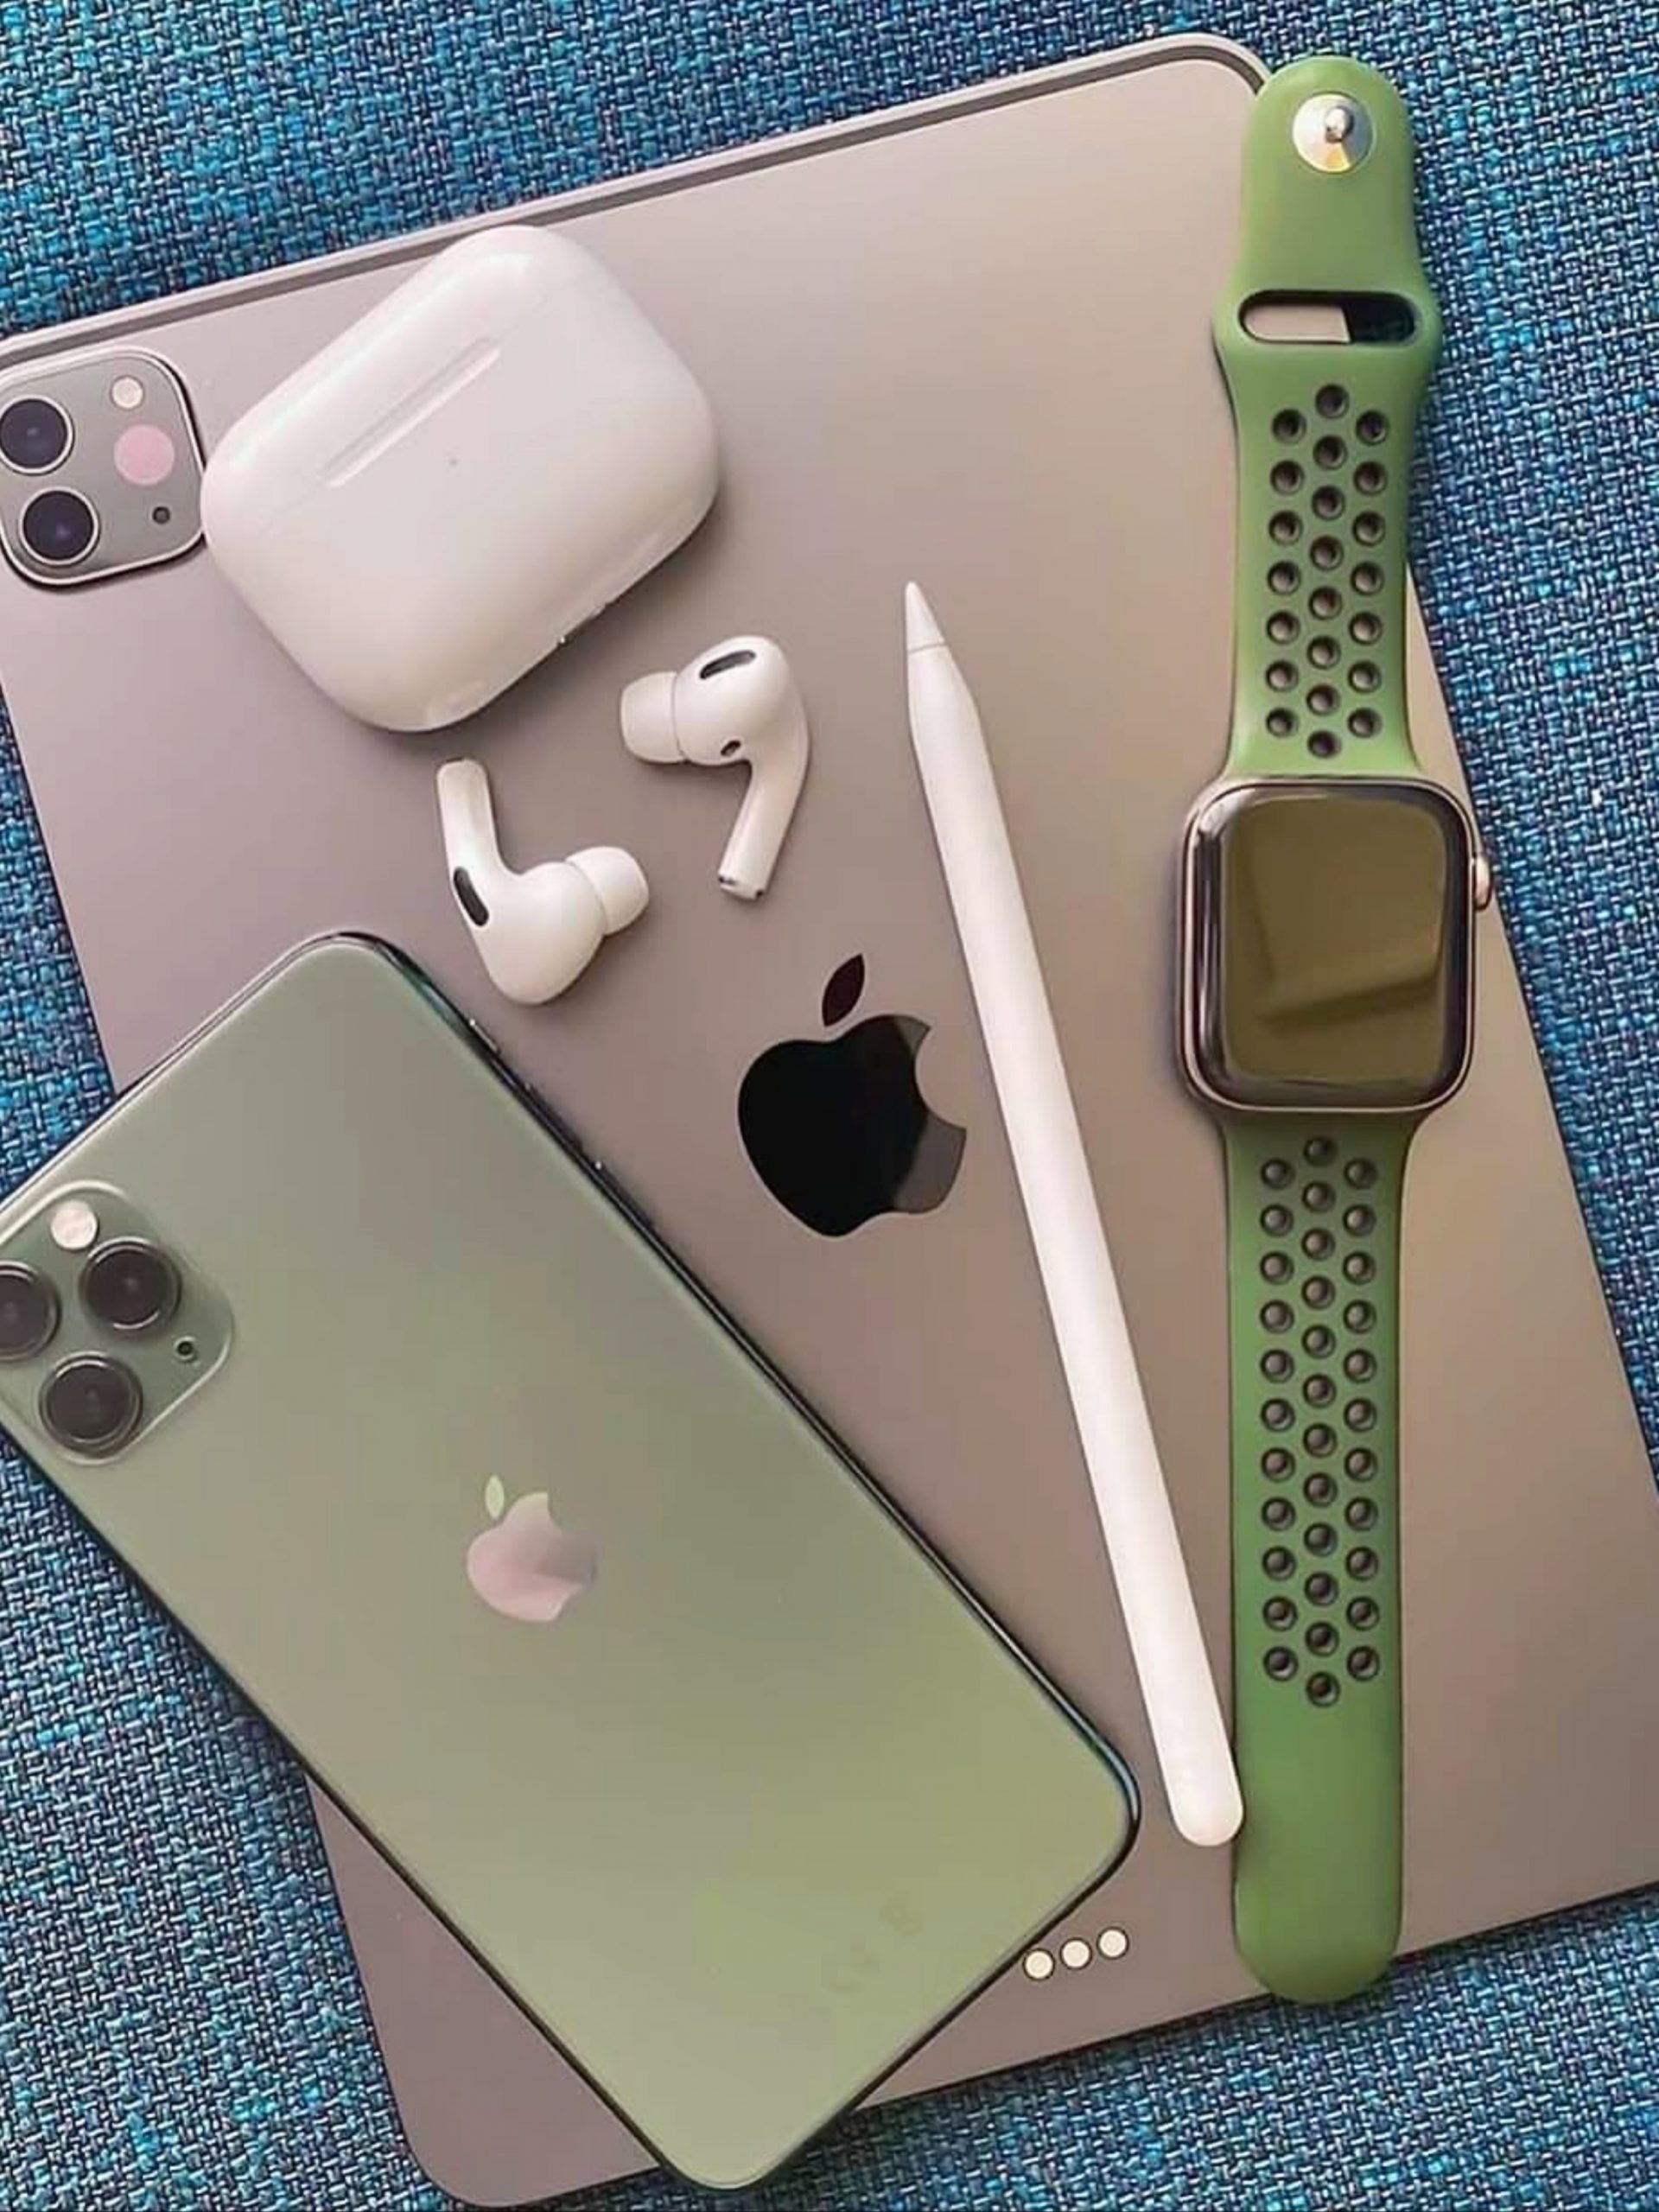 Apple company laptop and phone